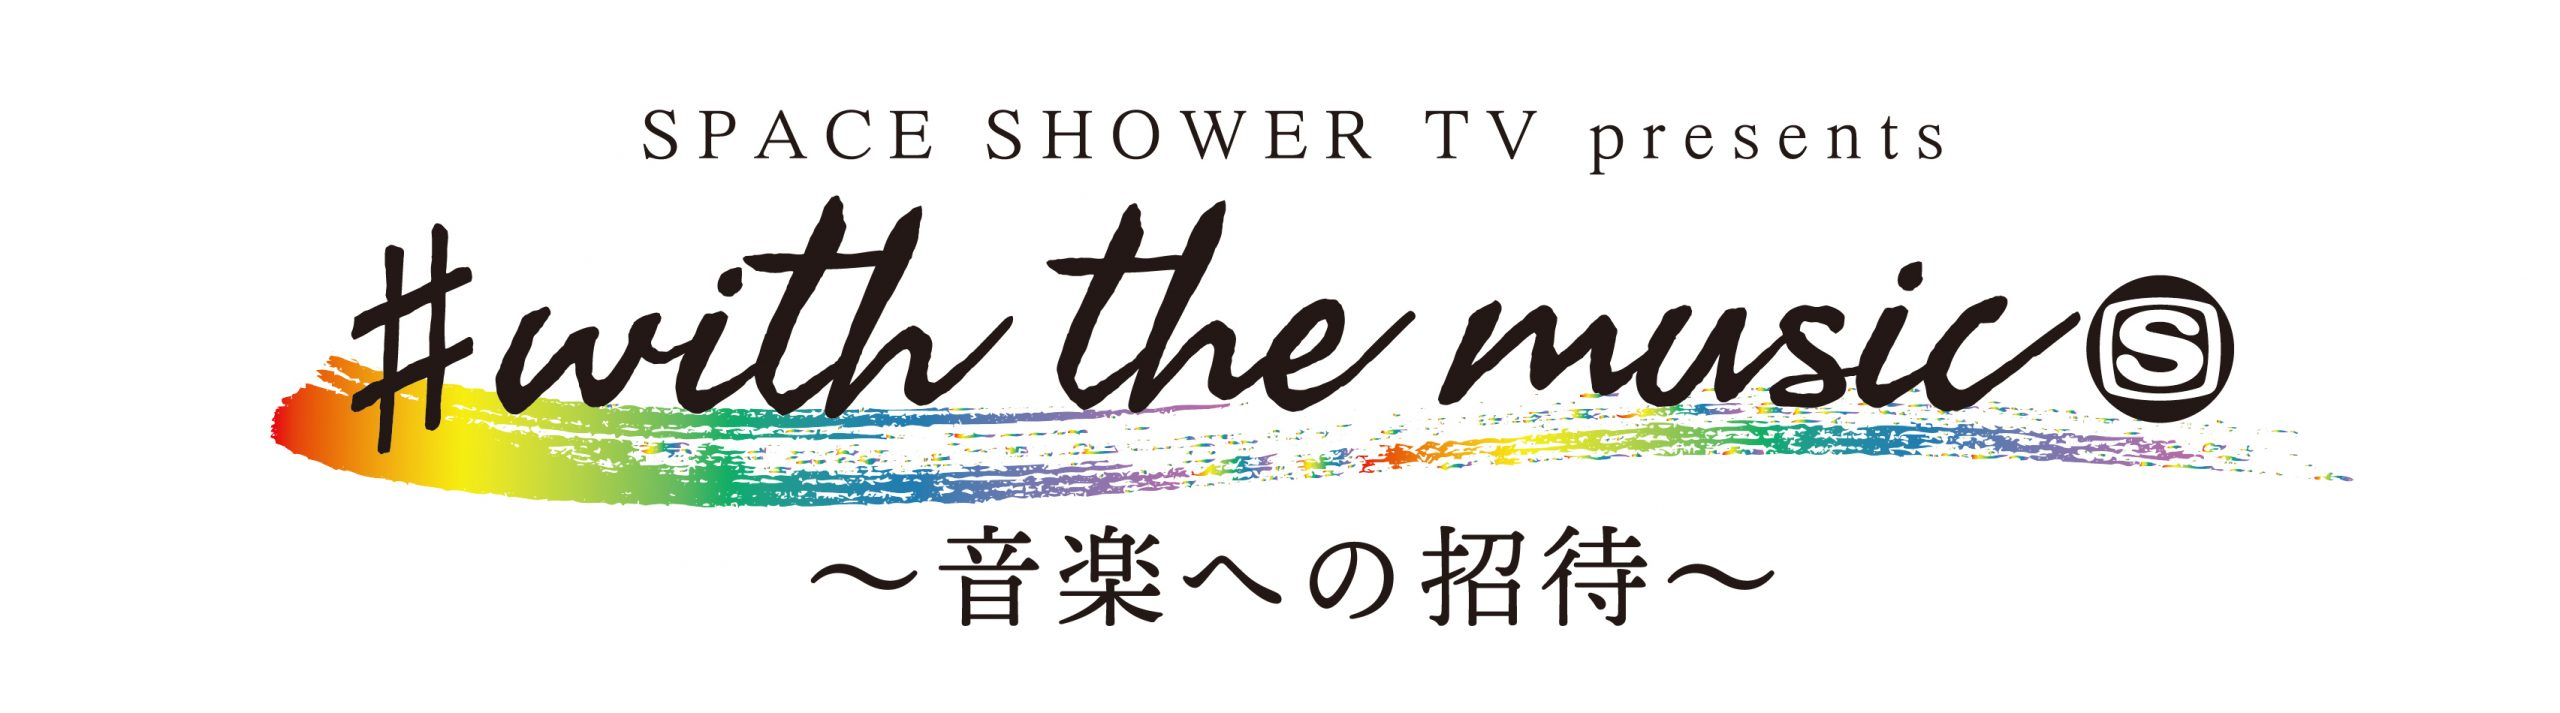 SPACE SHOWER TV presents #with the music ~音楽への招待~